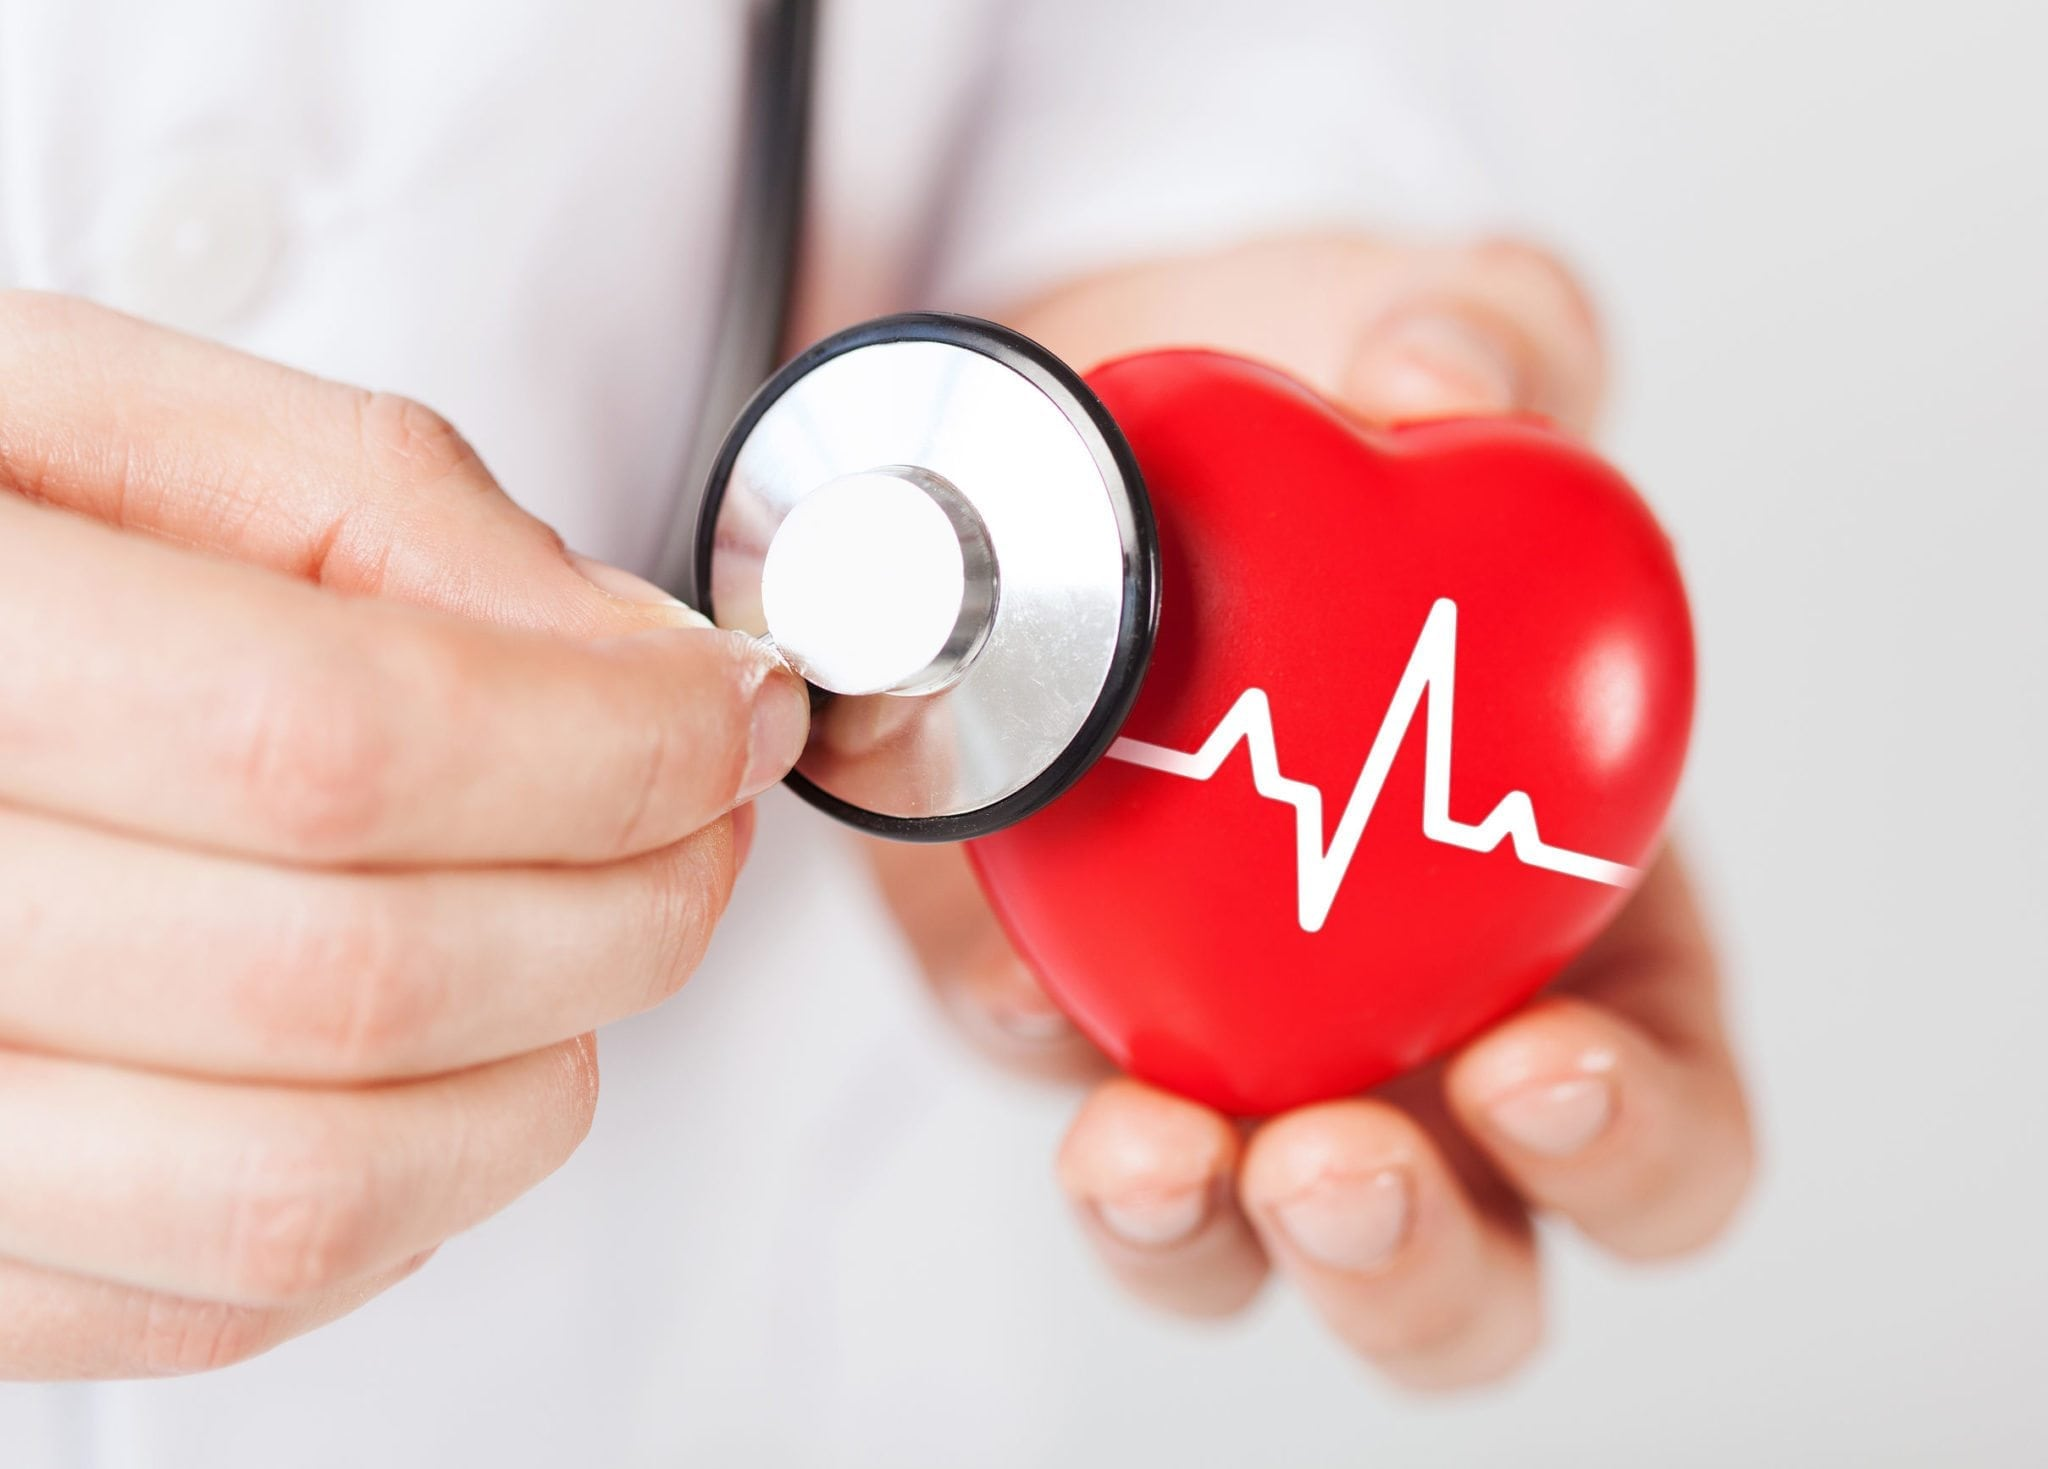 Learn About Your Risk to Heart Disease